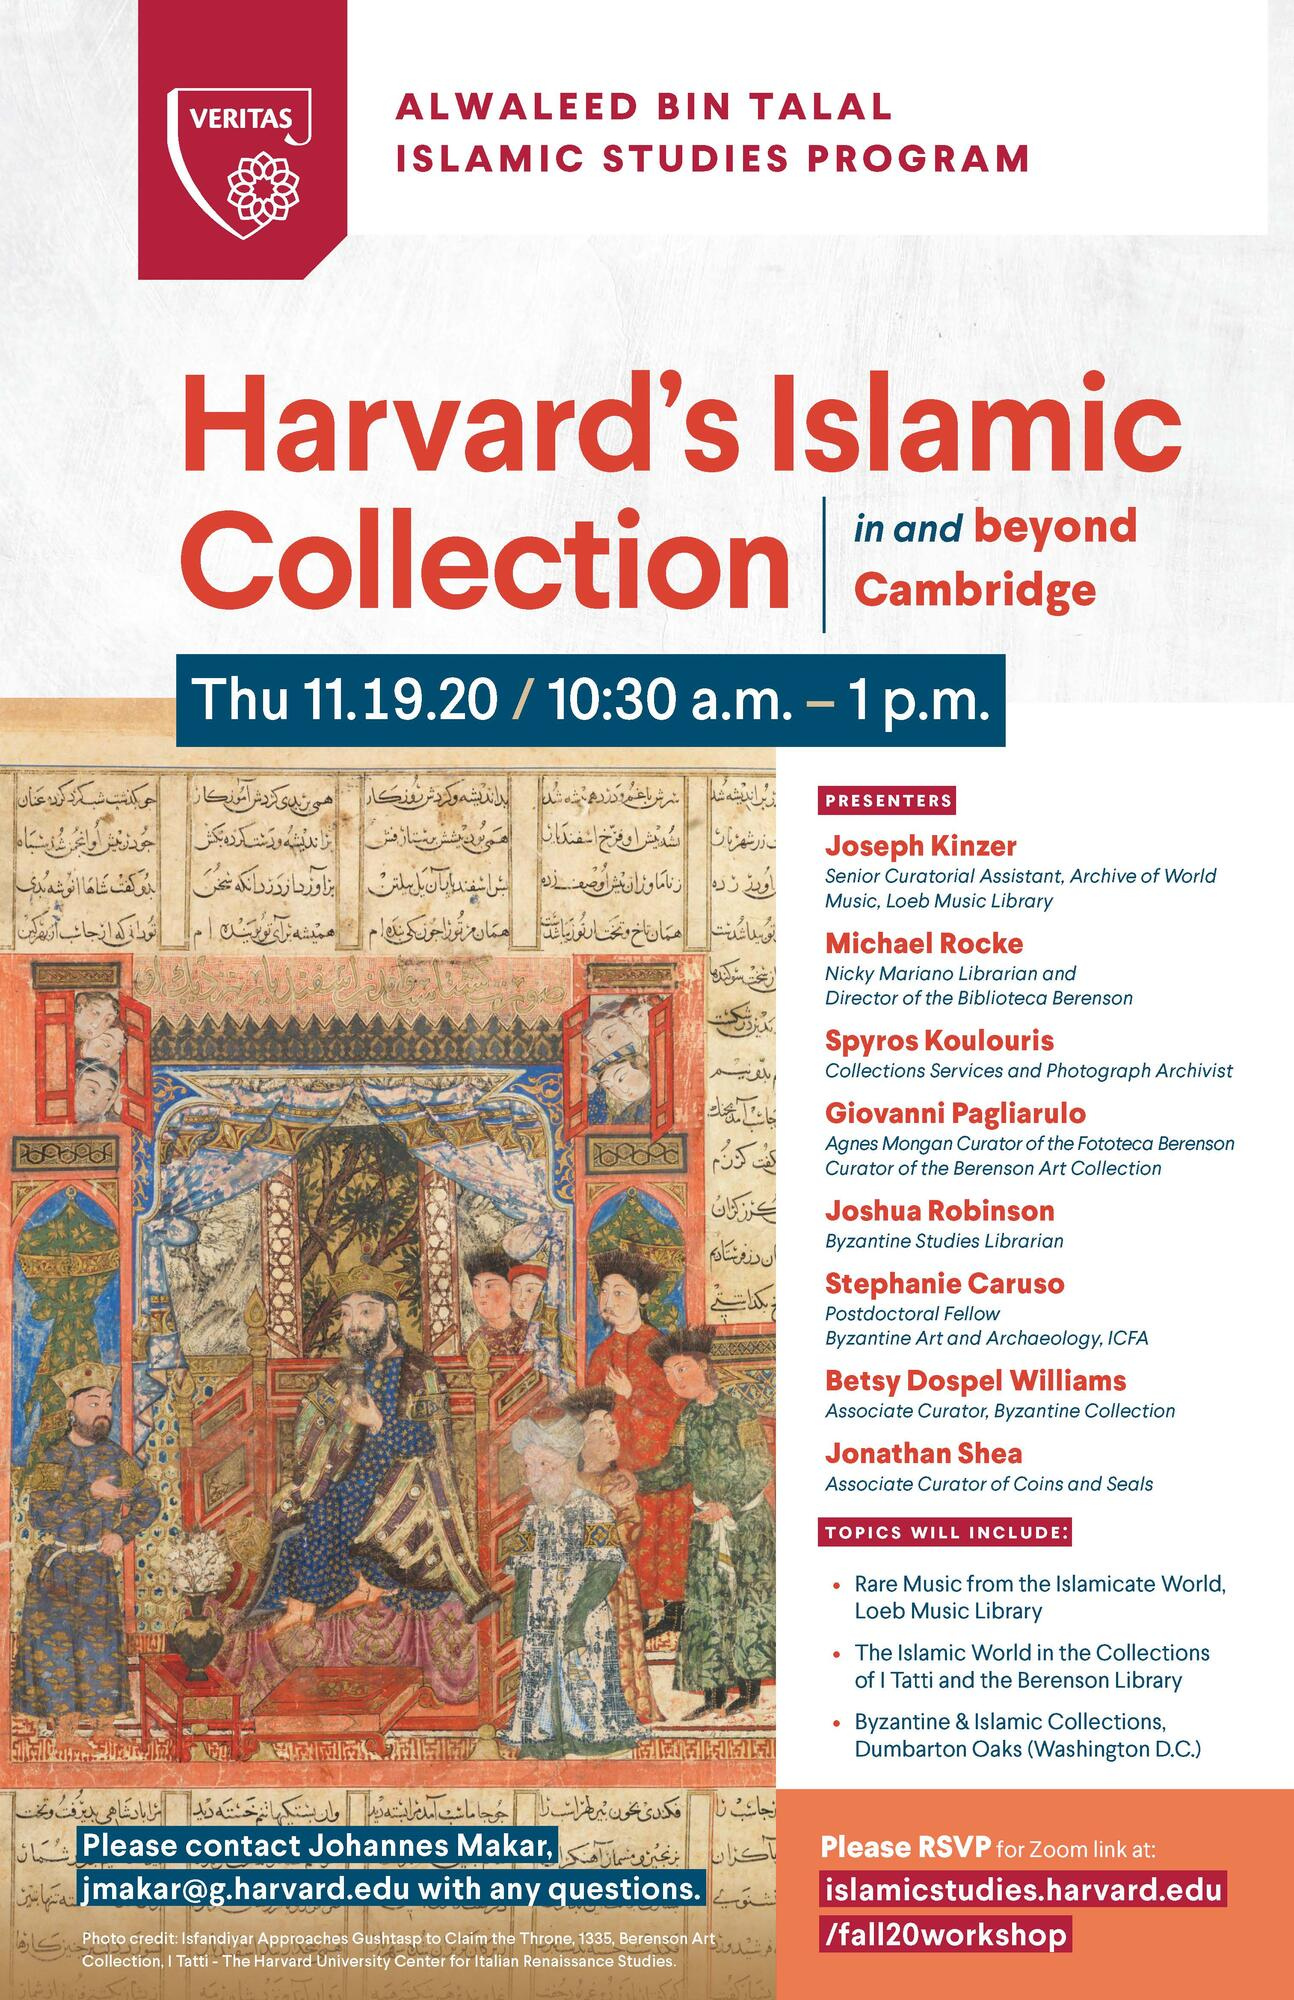 Harvard Islamic Collection in and beyond Cambridge